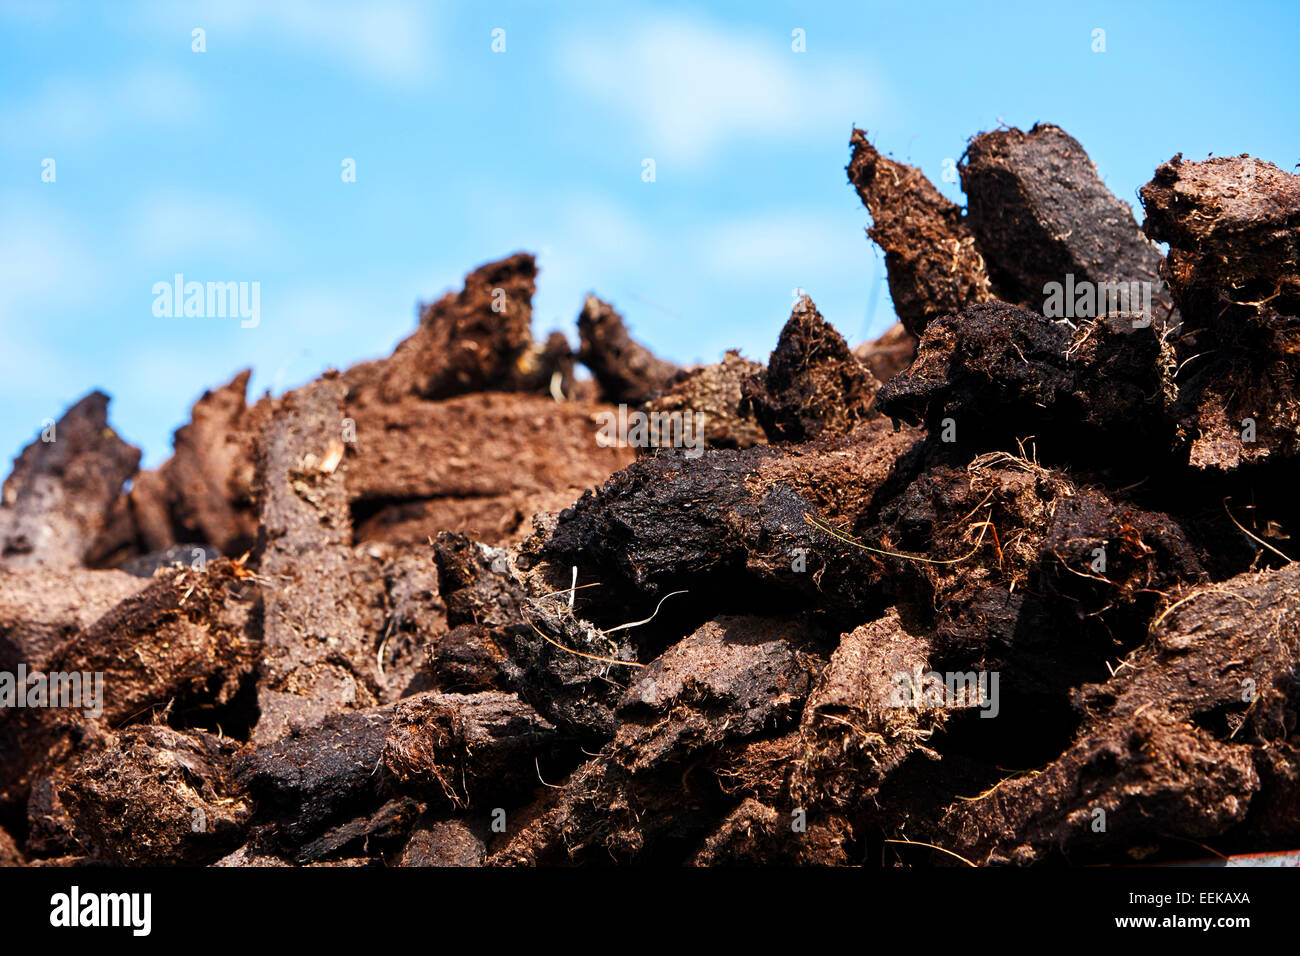 pile of irish peat turf fuel collected for home usage - Stock Image